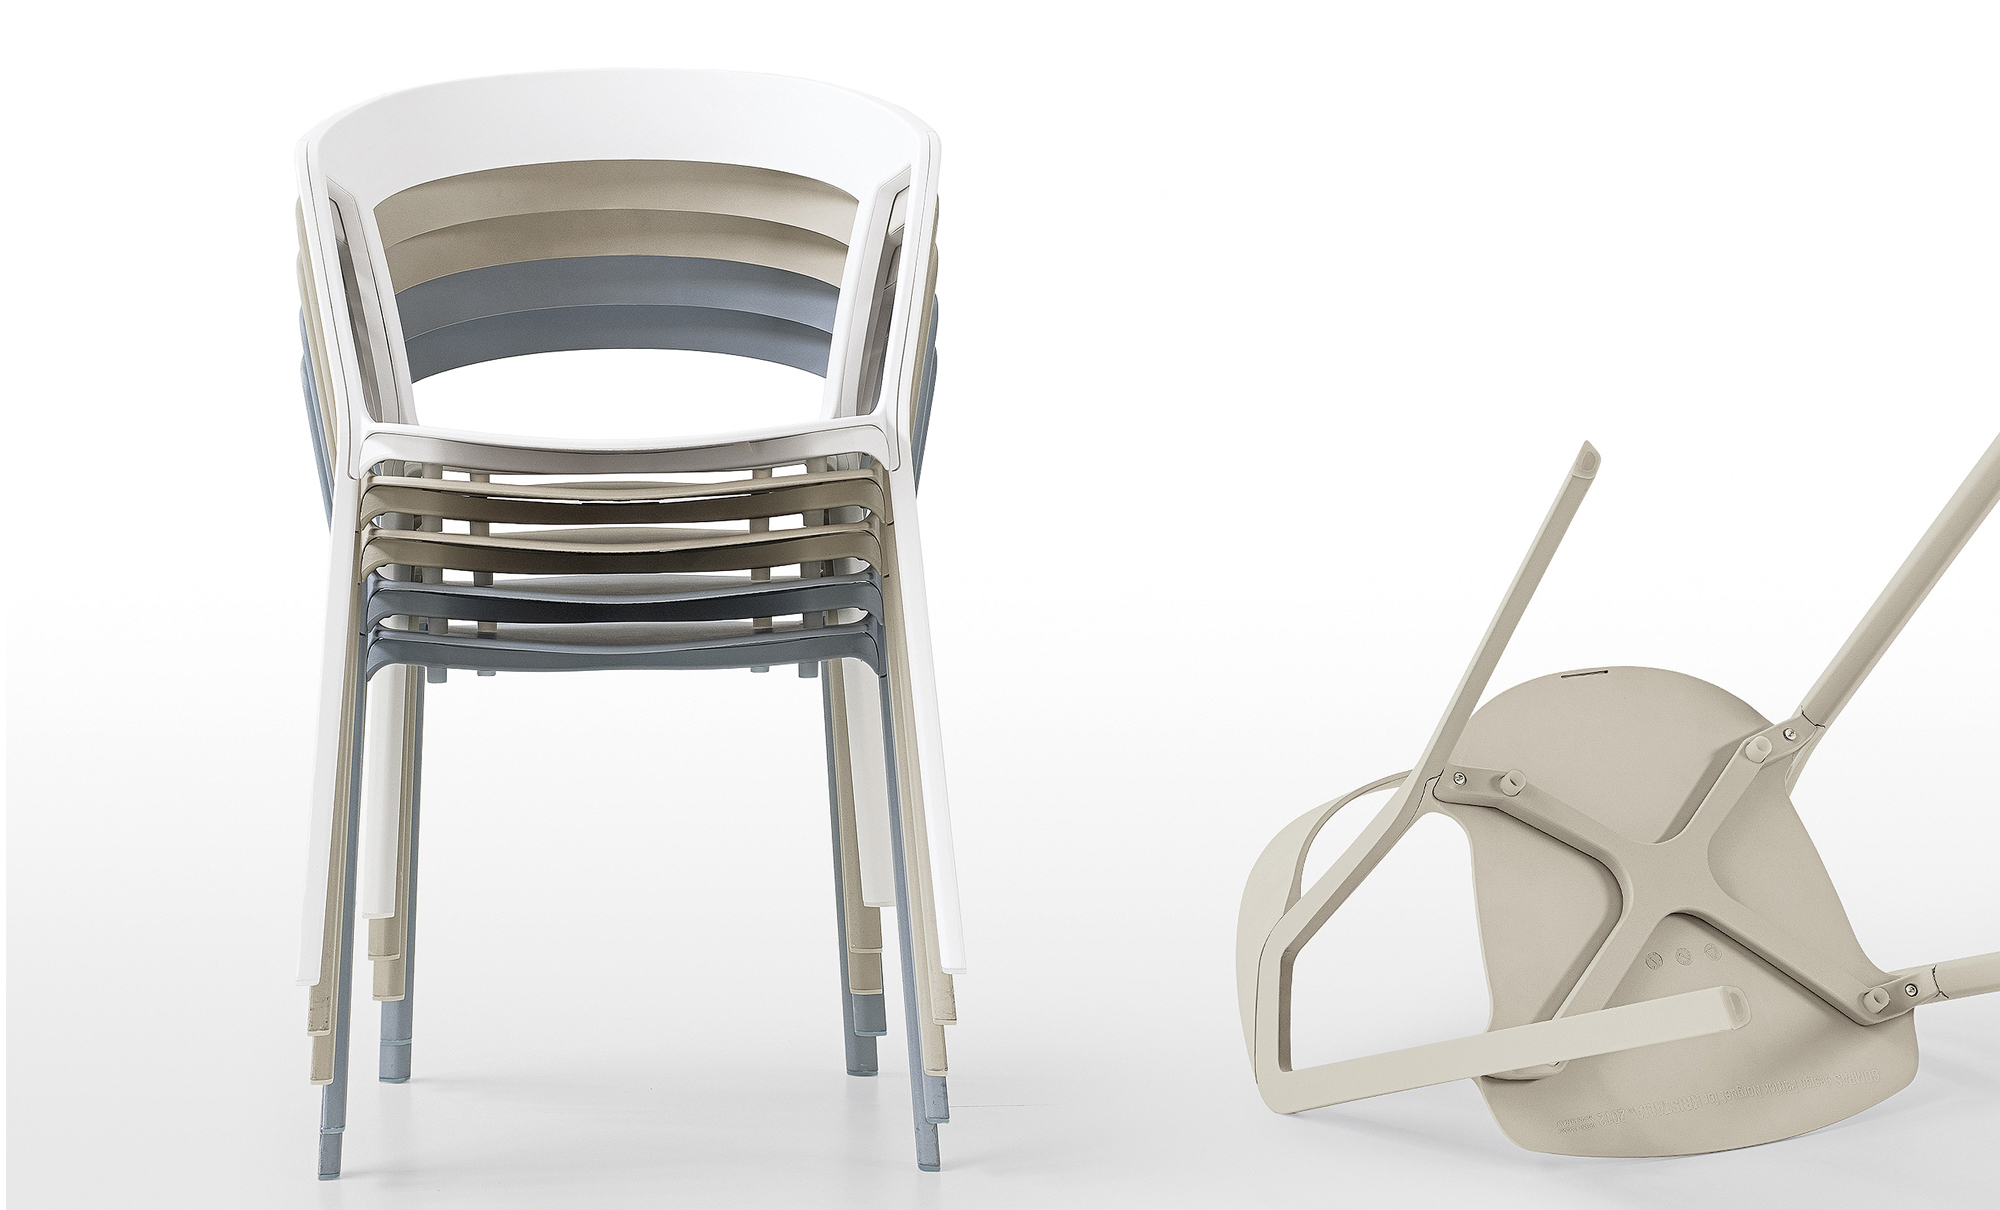 Image Result For Roberti Outdoor Furniture